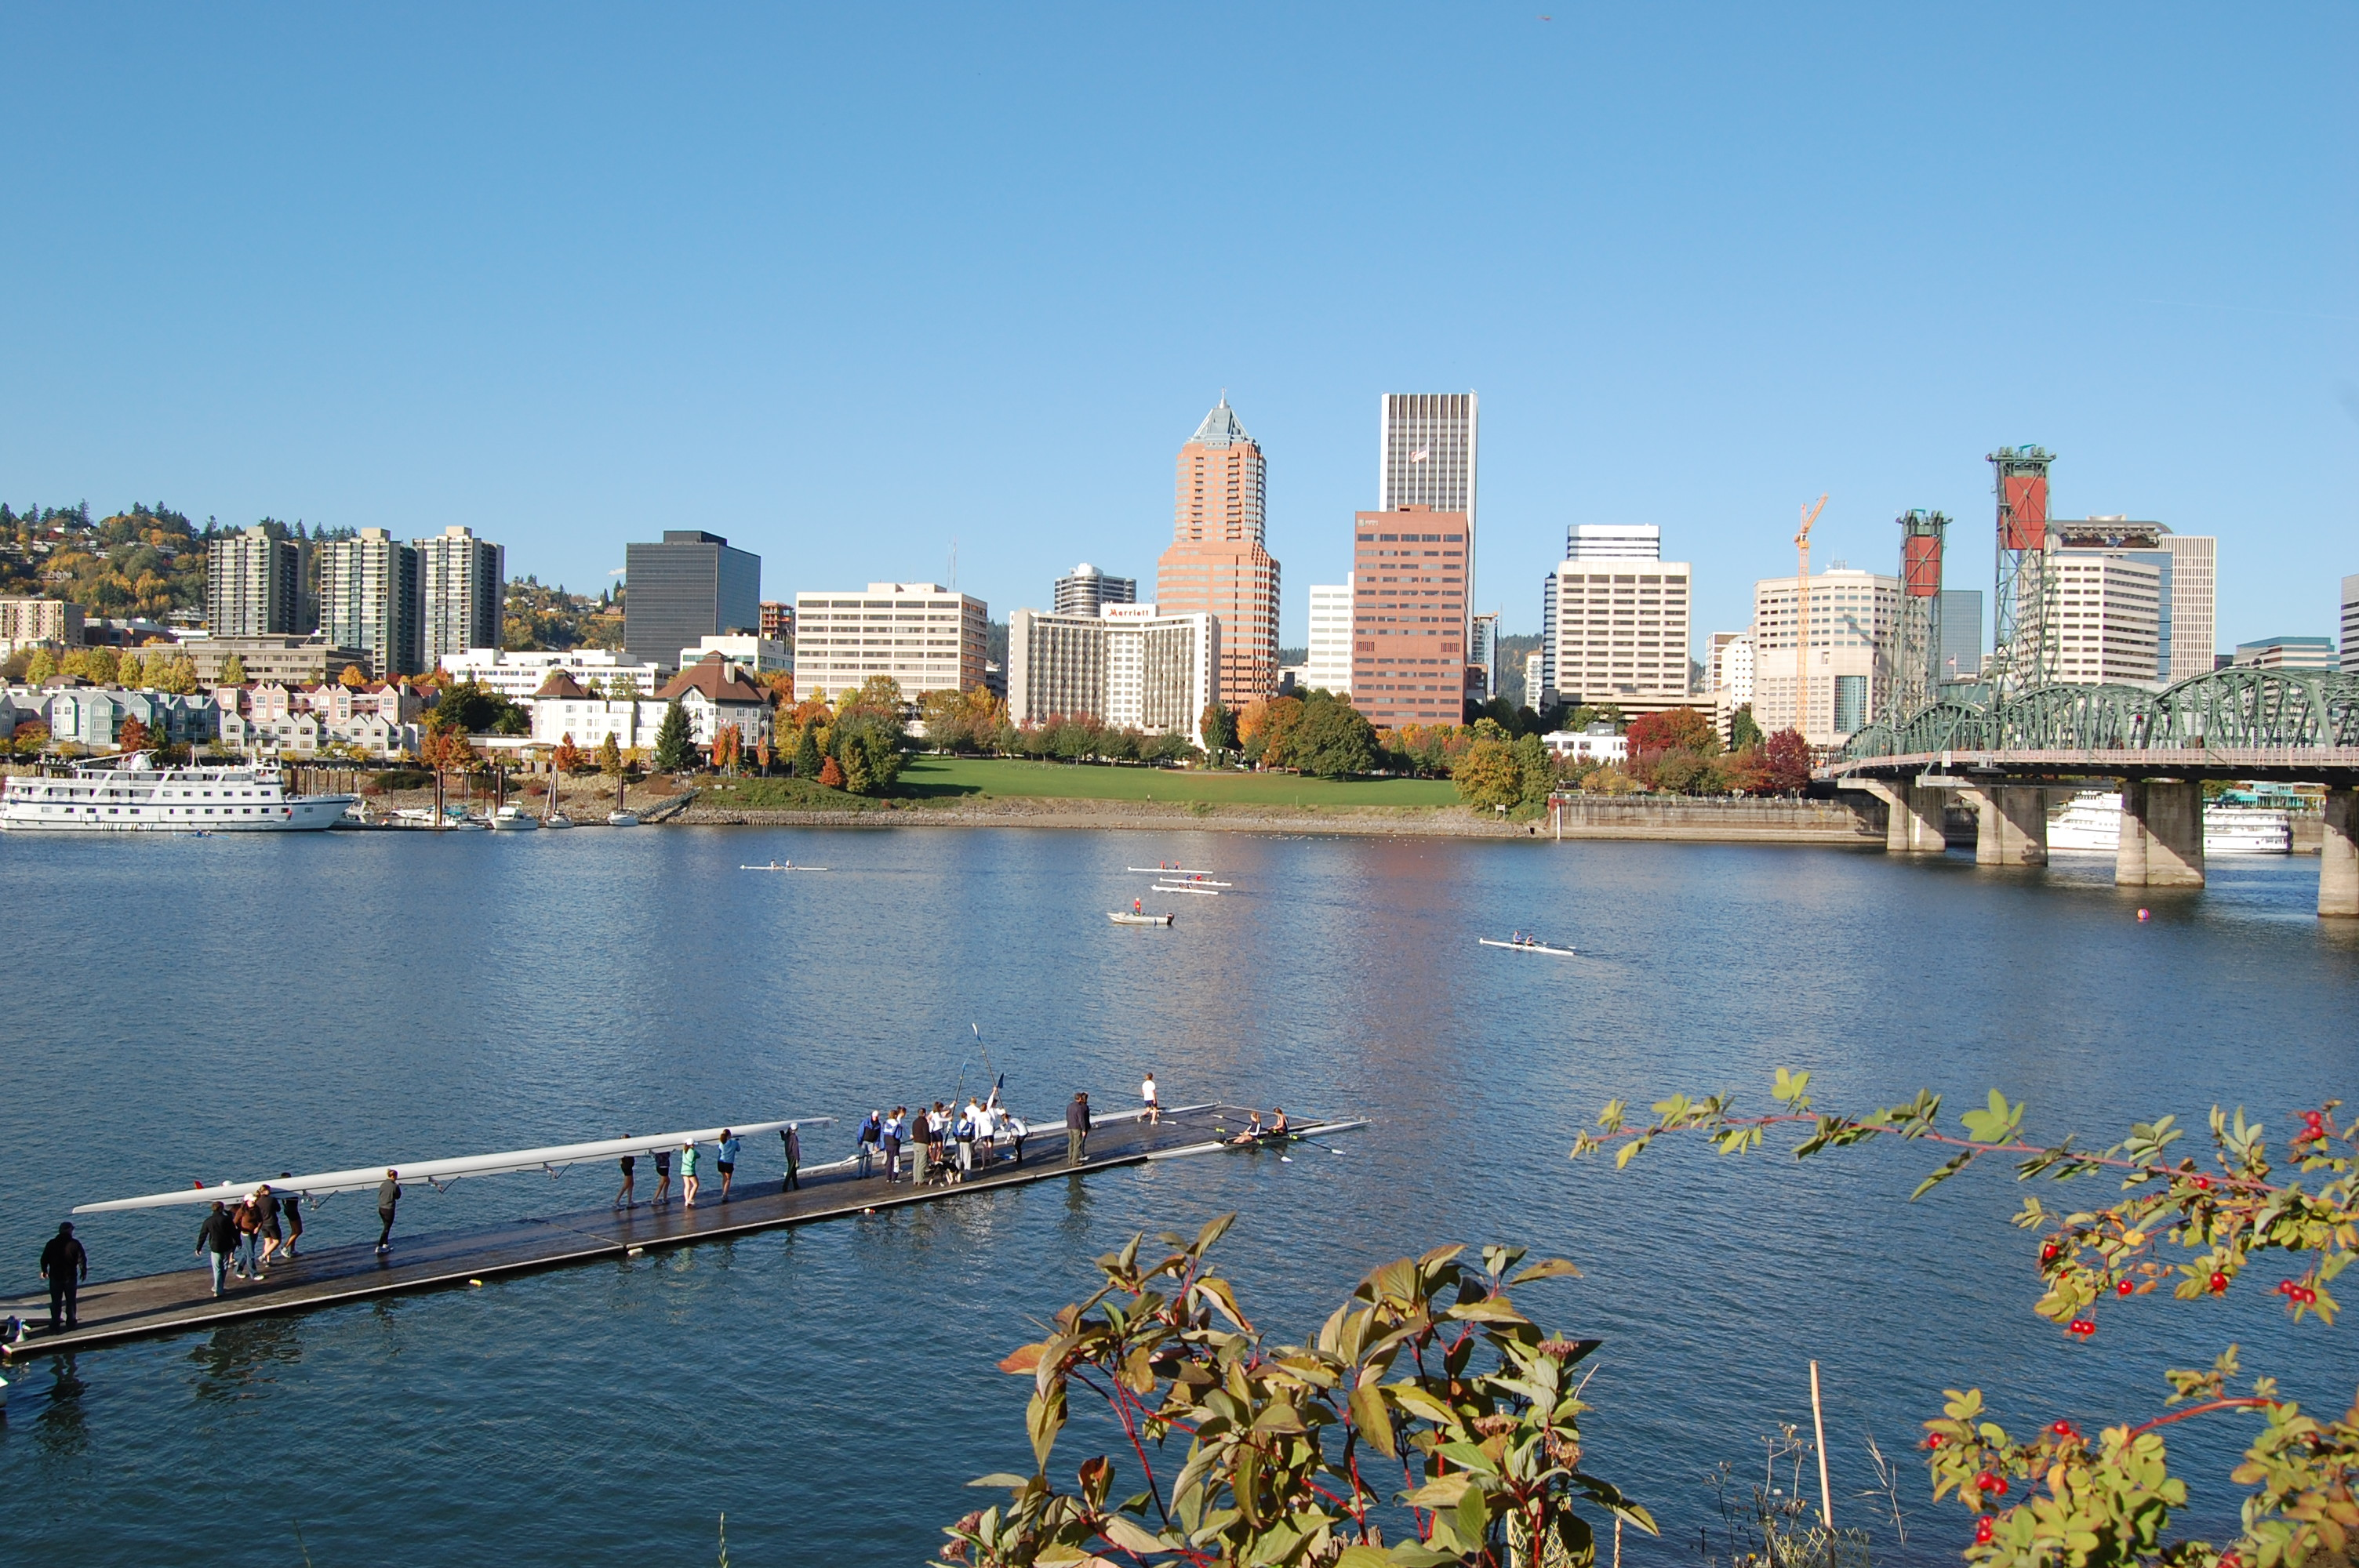 Portland Boathouse Dock during the Portland Fall Classic 2008